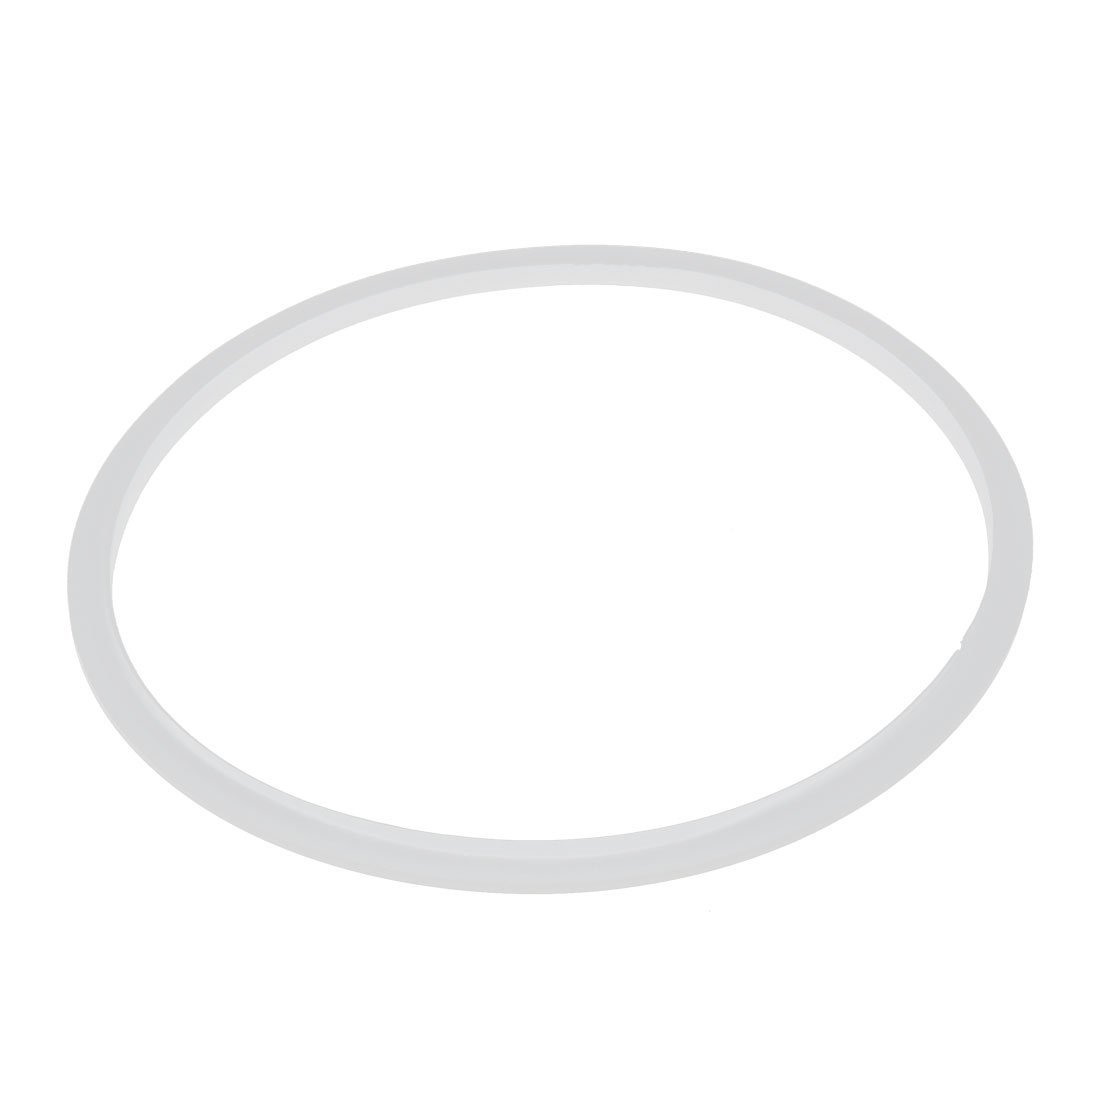 24cm Inner Dia Clear Silicone Pressure Cooker Sealing Ring White Electric Pressure Cooker Replacements Parts electric pressure cookers electric pressure cooker double gall 5l electric pressure cooker rice cooker 5 people